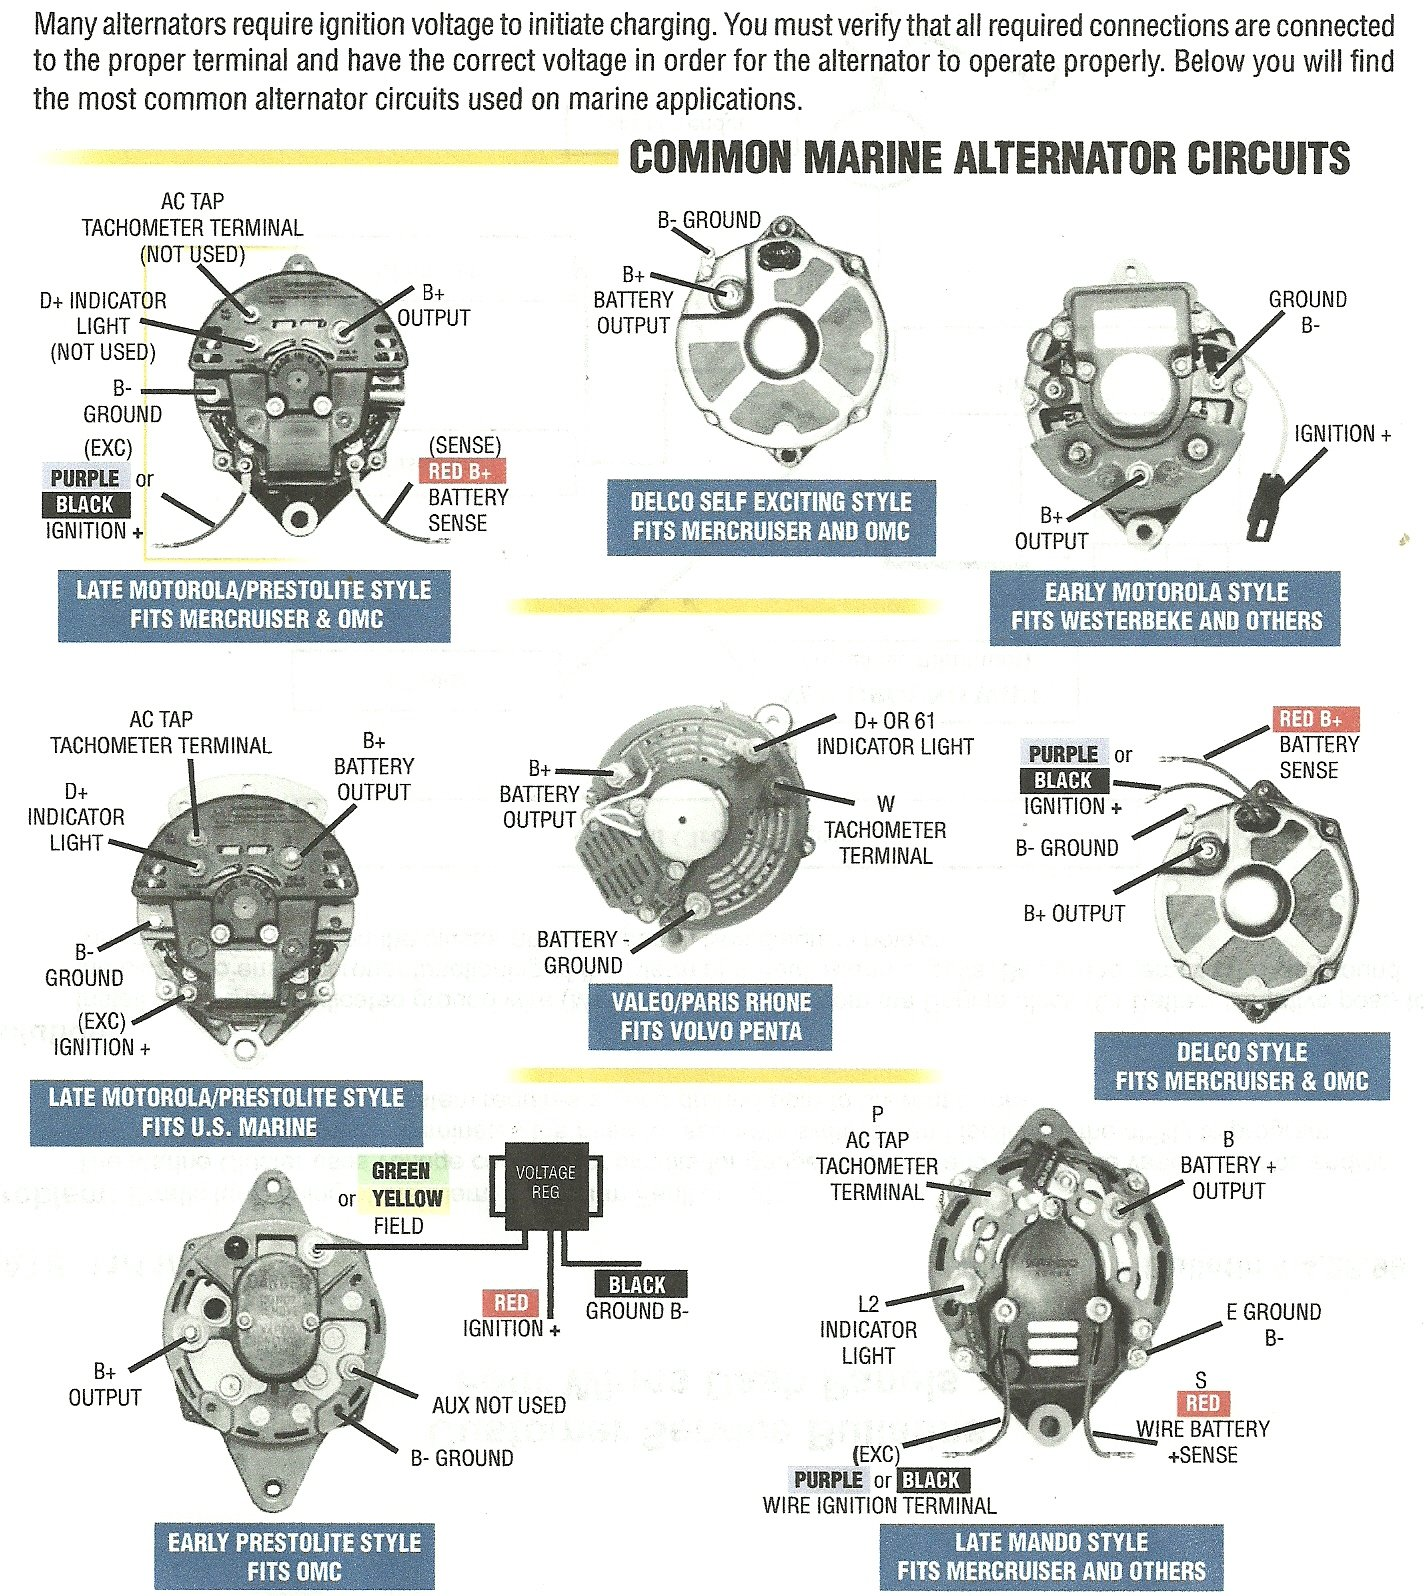 2012 06 26_174047_scan0001 motorola marine 50 amp alternator connection description marine alternator engine wiring diagram at honlapkeszites.co